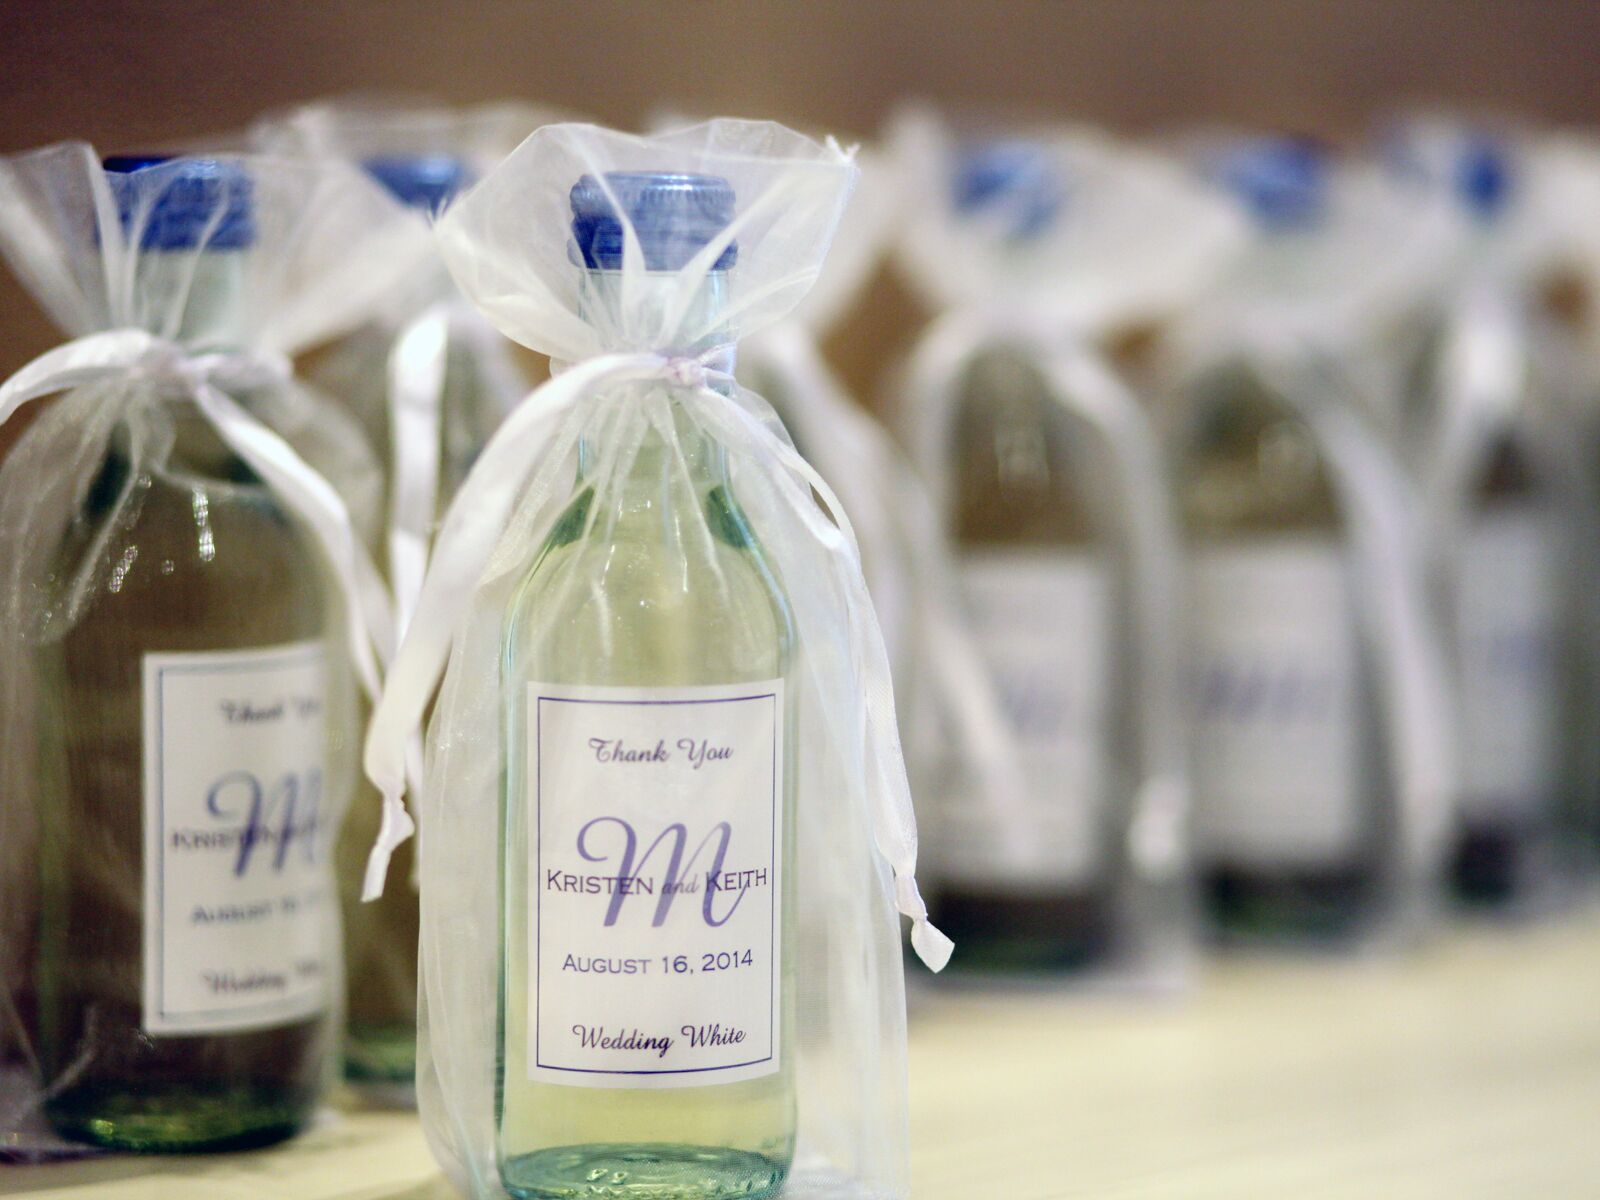 Awesome Mini Bottles Of Wine For Wedding Favors Ideas - Styles ...